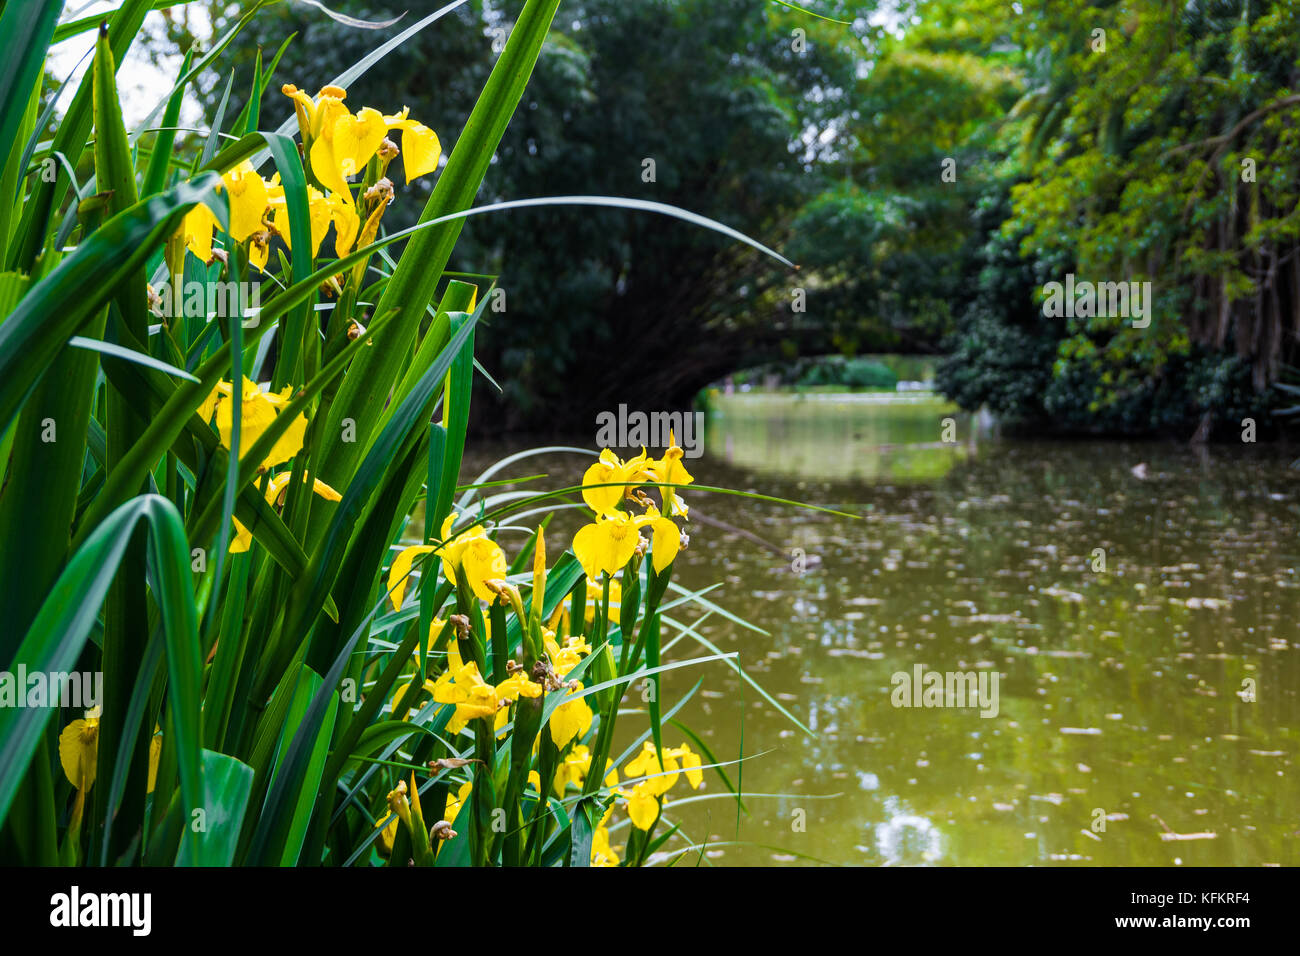 Bush With Yellow Flowers In A Pond Stock Photo 164548696 Alamy